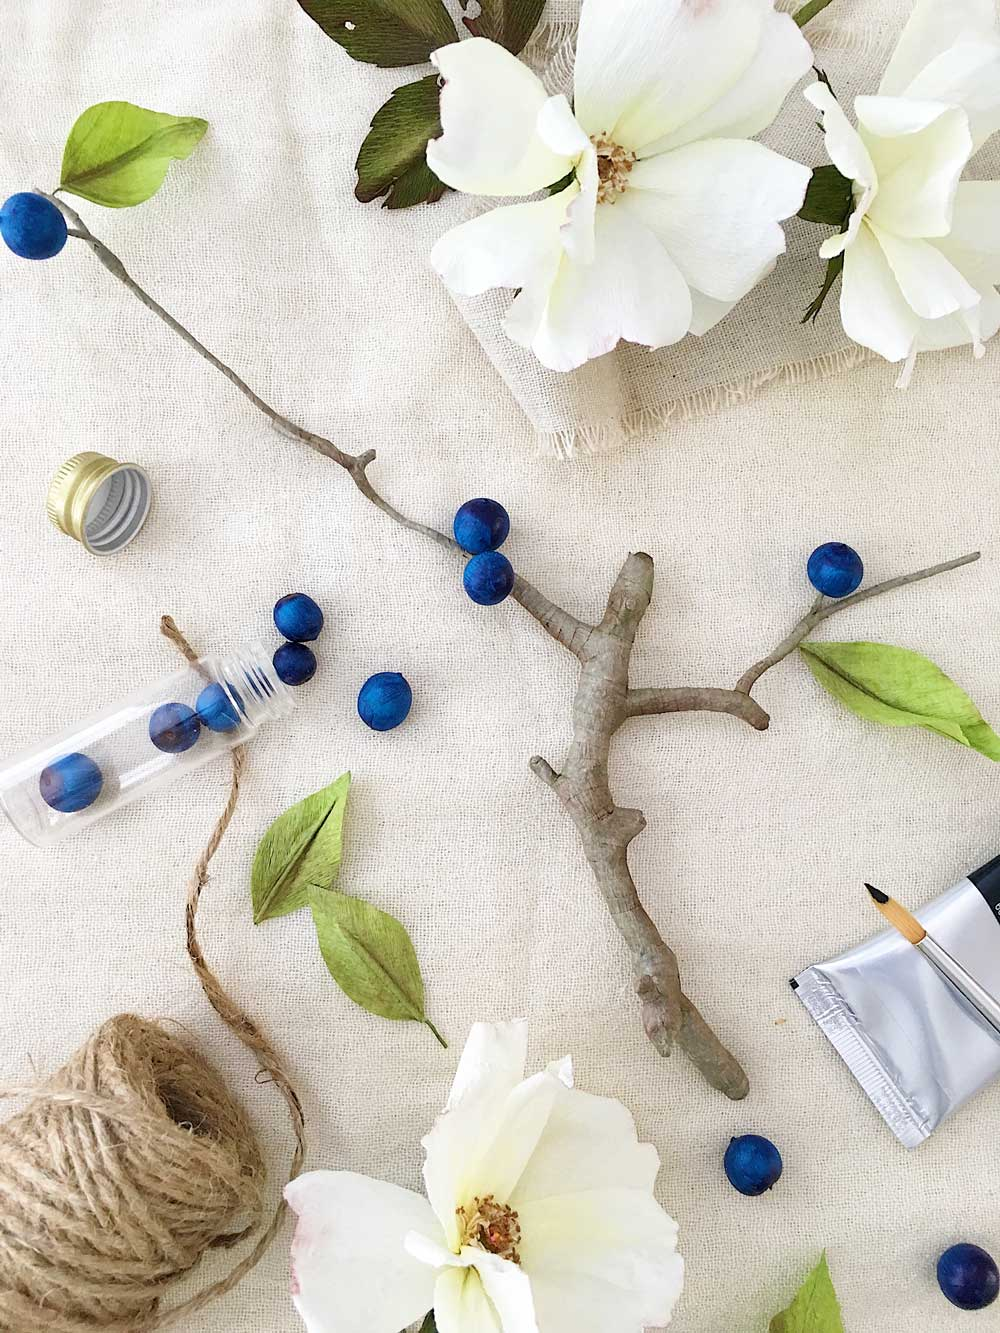 How-to-Make-a-Berry-Branch-by-Crafted-to-Bloom-portrait.jpg